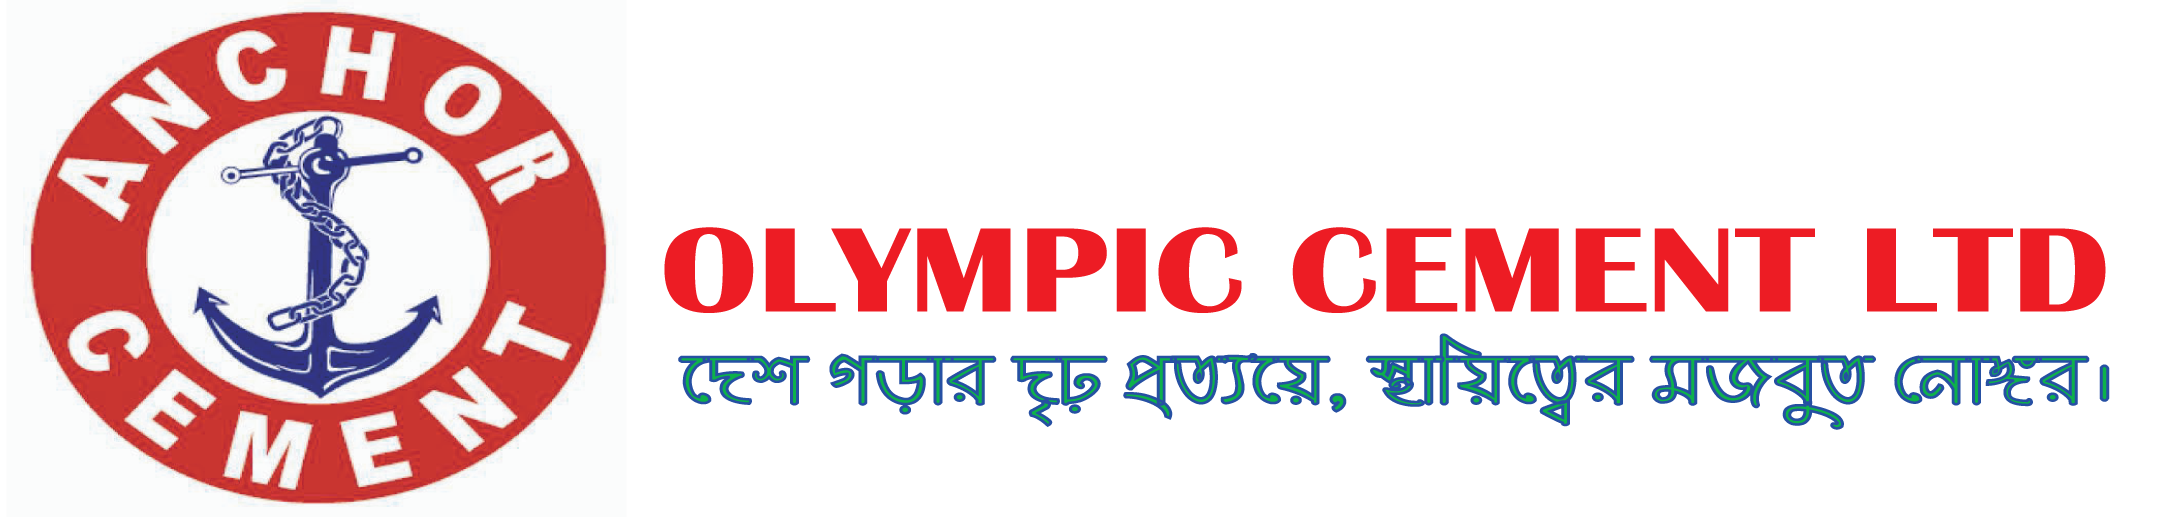 Olympic cement Limited